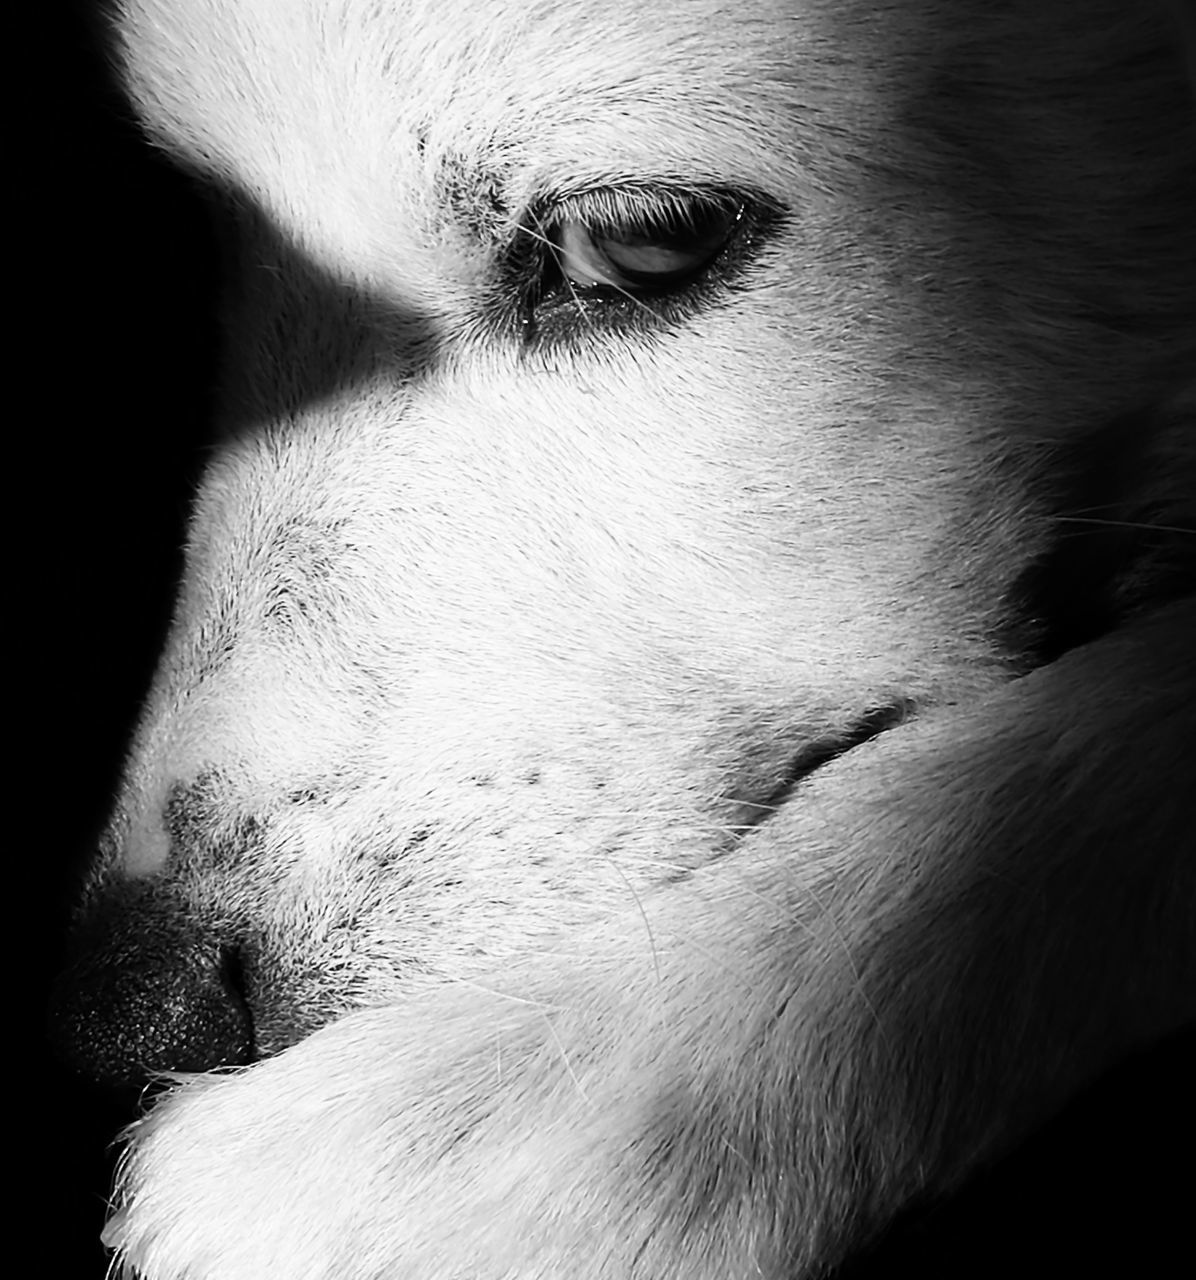 dog, pets, one animal, domestic animals, animal themes, mammal, animal head, close-up, no people, day, portrait, outdoors, black background, beagle